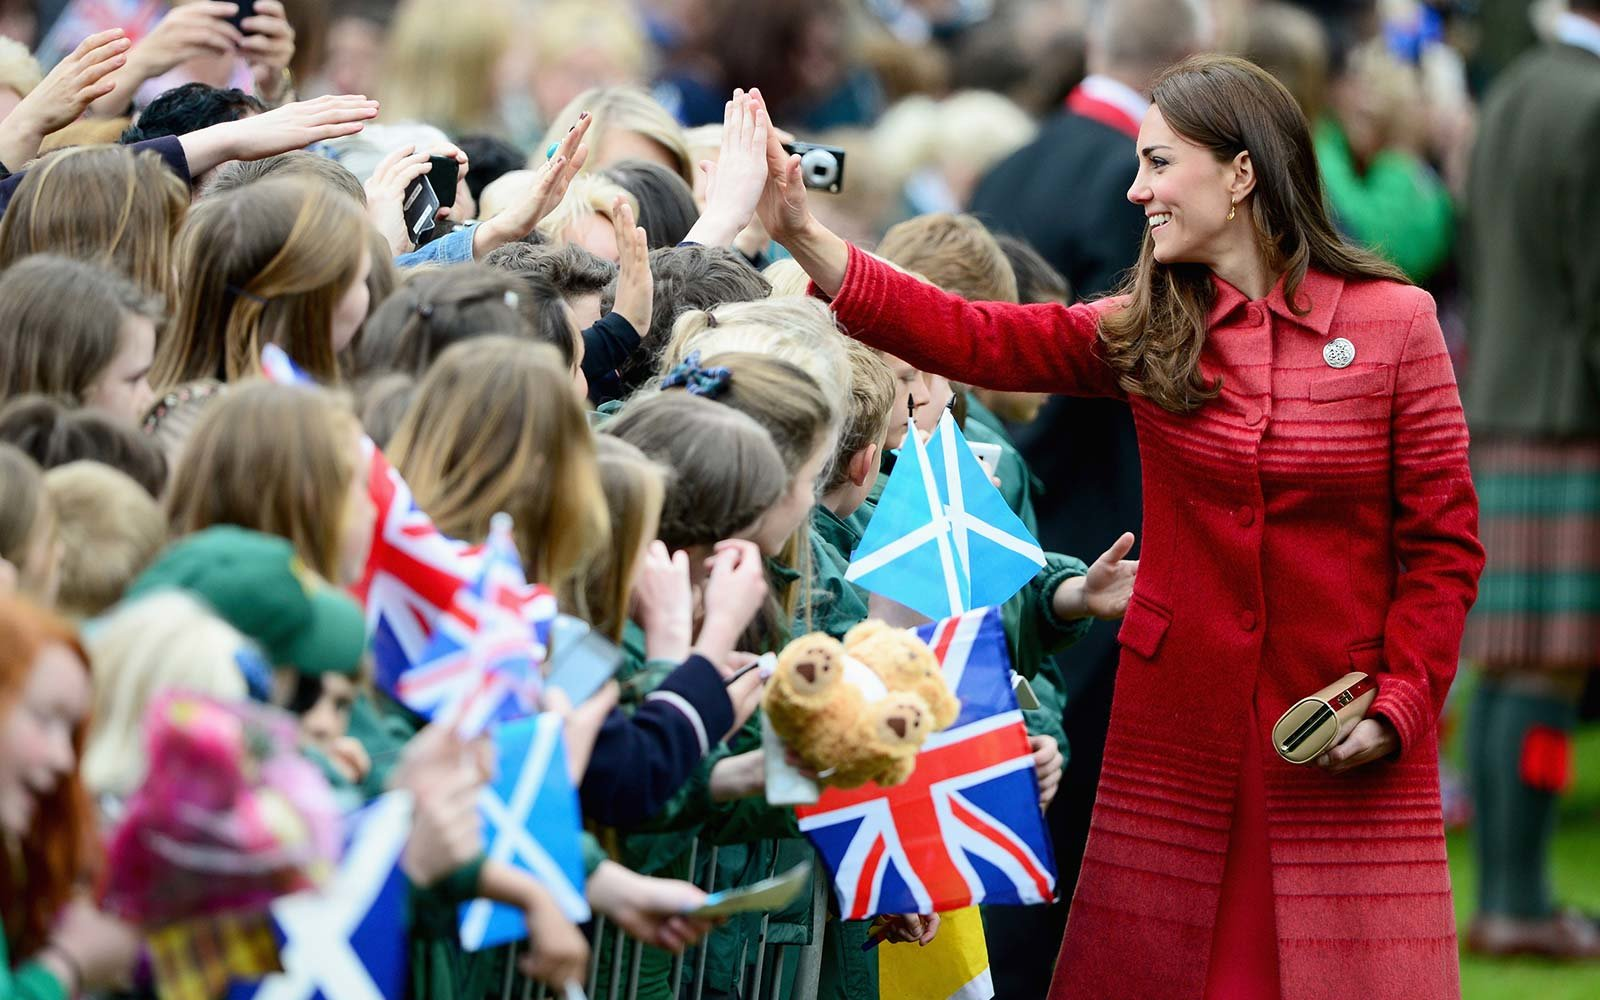 Catherine, Duchess of Cambridge greets fans at MacRostyy Park in Crieff, Scotland Kate Middleton British Royal Family UK autograph ban